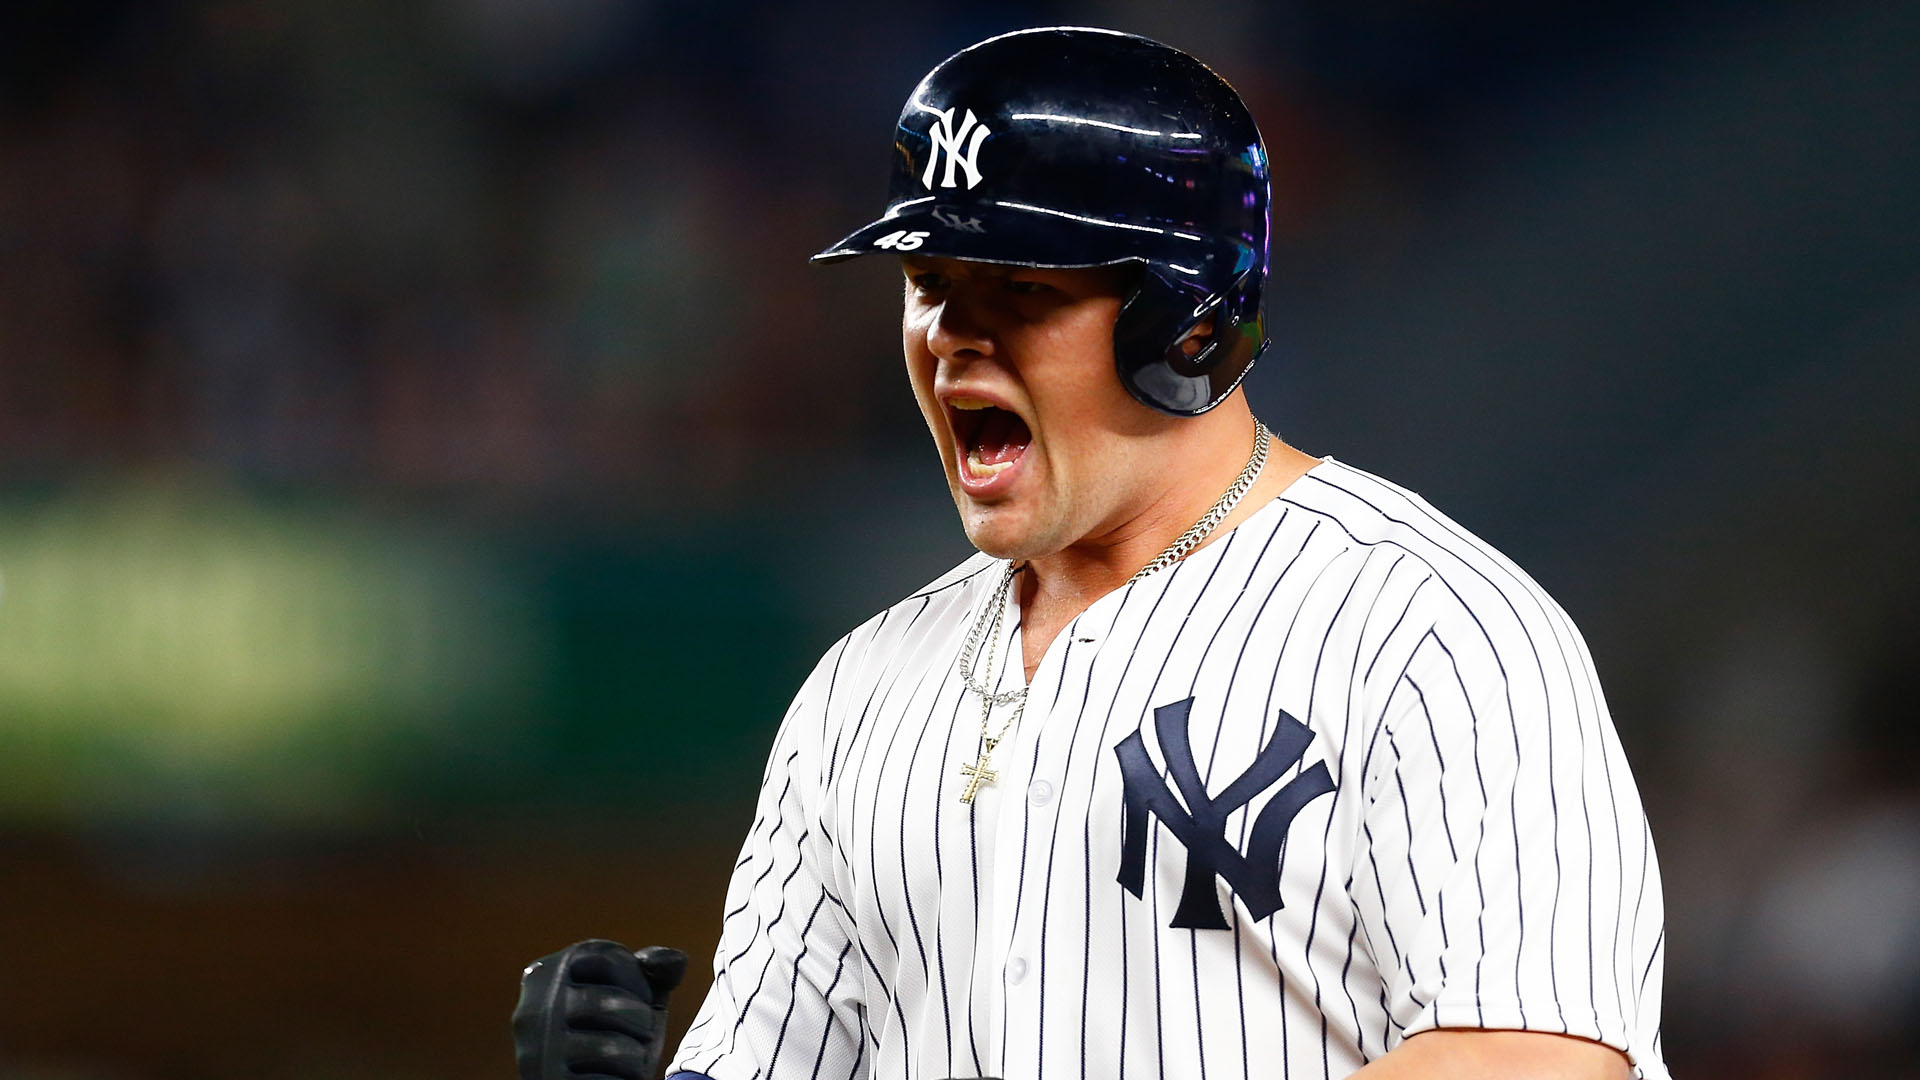 Yankees Bounce Back With 6-2 Game 2 Win Over Red Sox